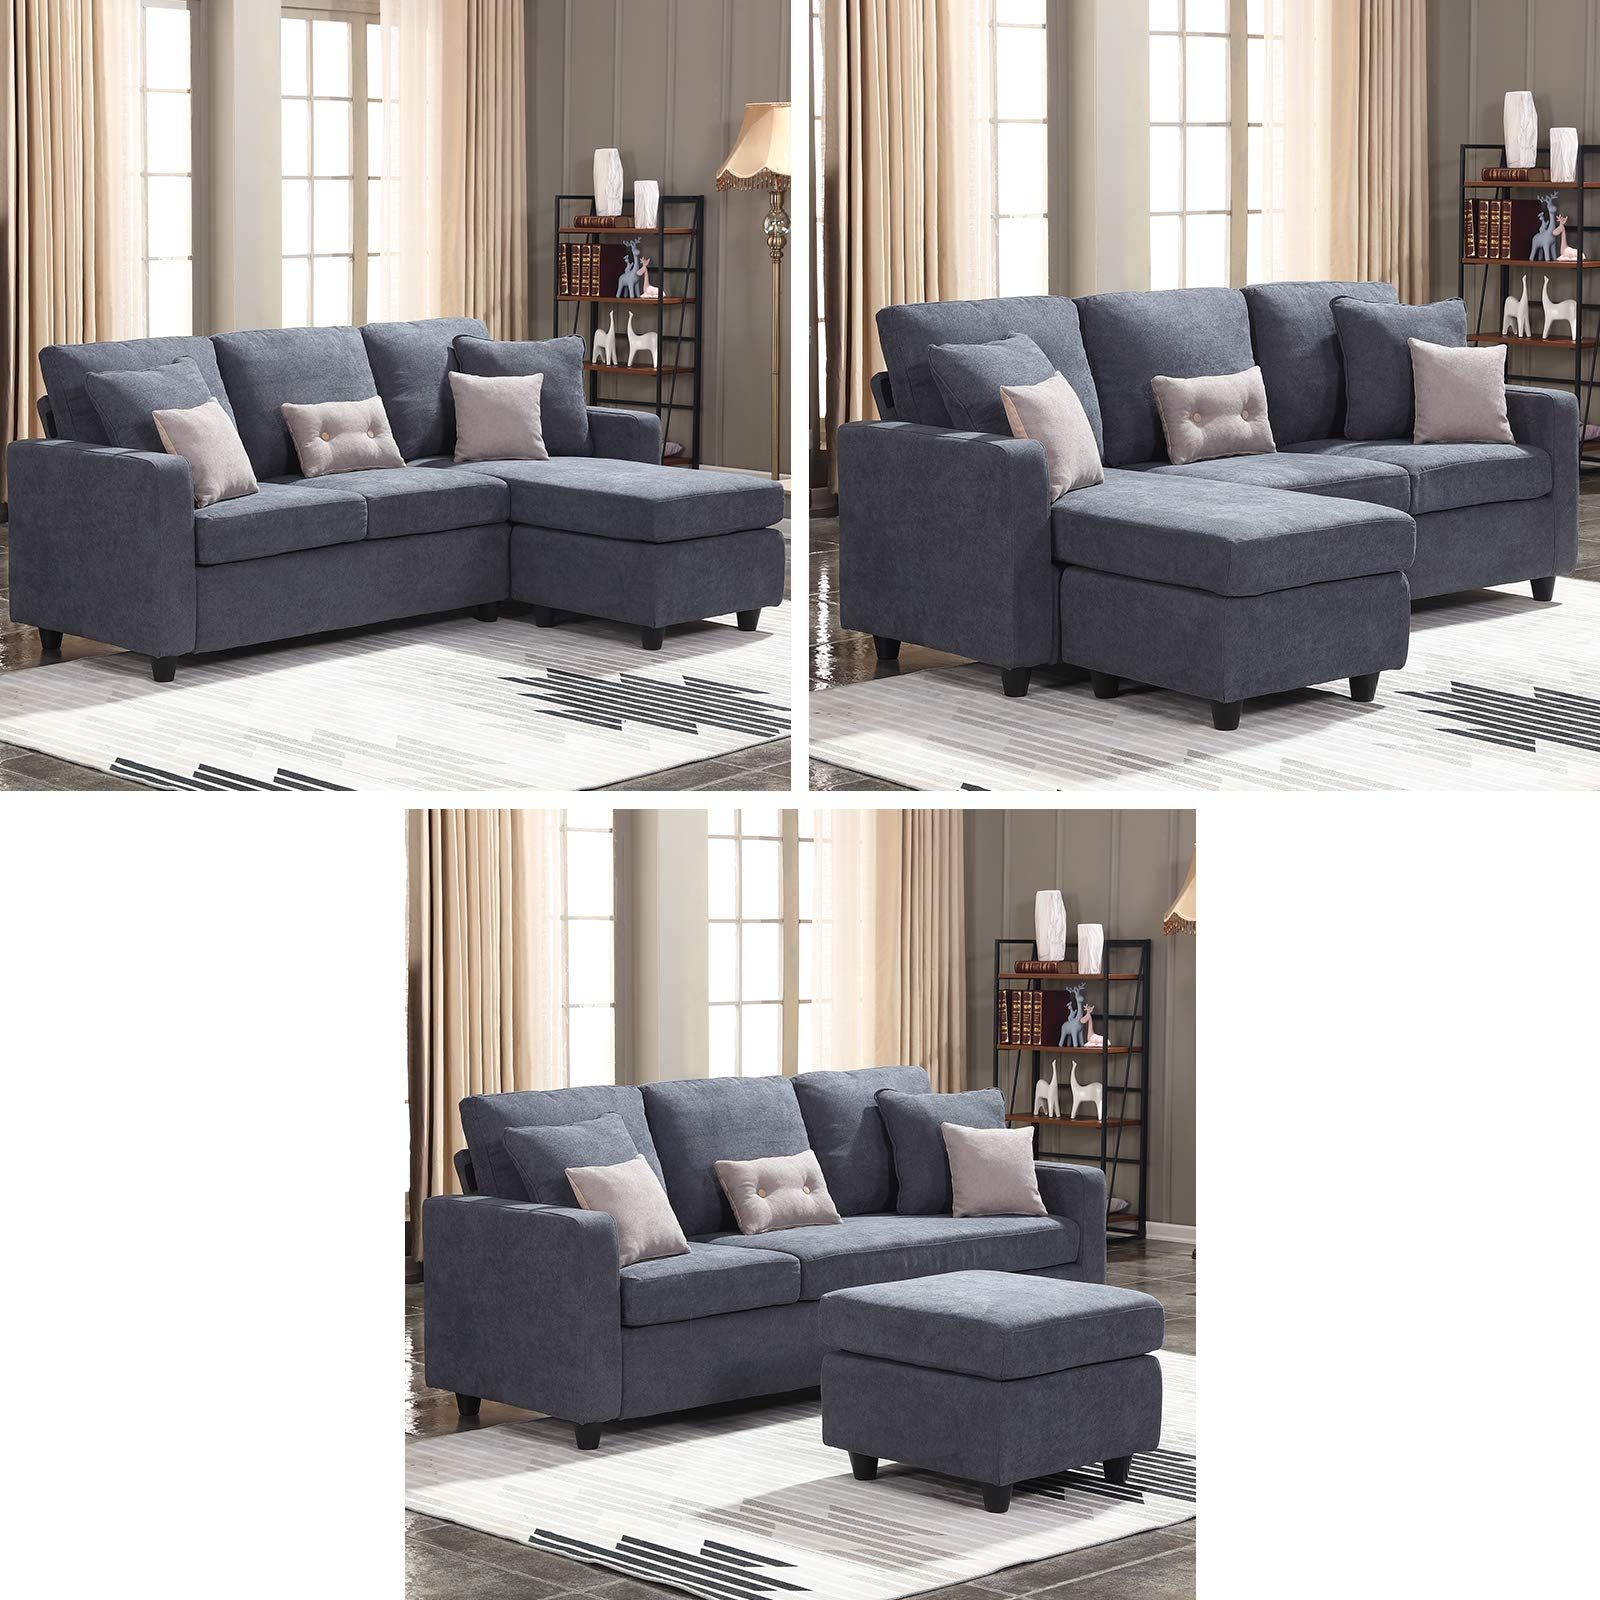 Honbay Convertible Sectional Sofa Couch L Shaped Couch With Modern Linen Fabric For Small Space Dark Grey Affi Sectional Sofa Couch L Shaped Couch Sofa Couch